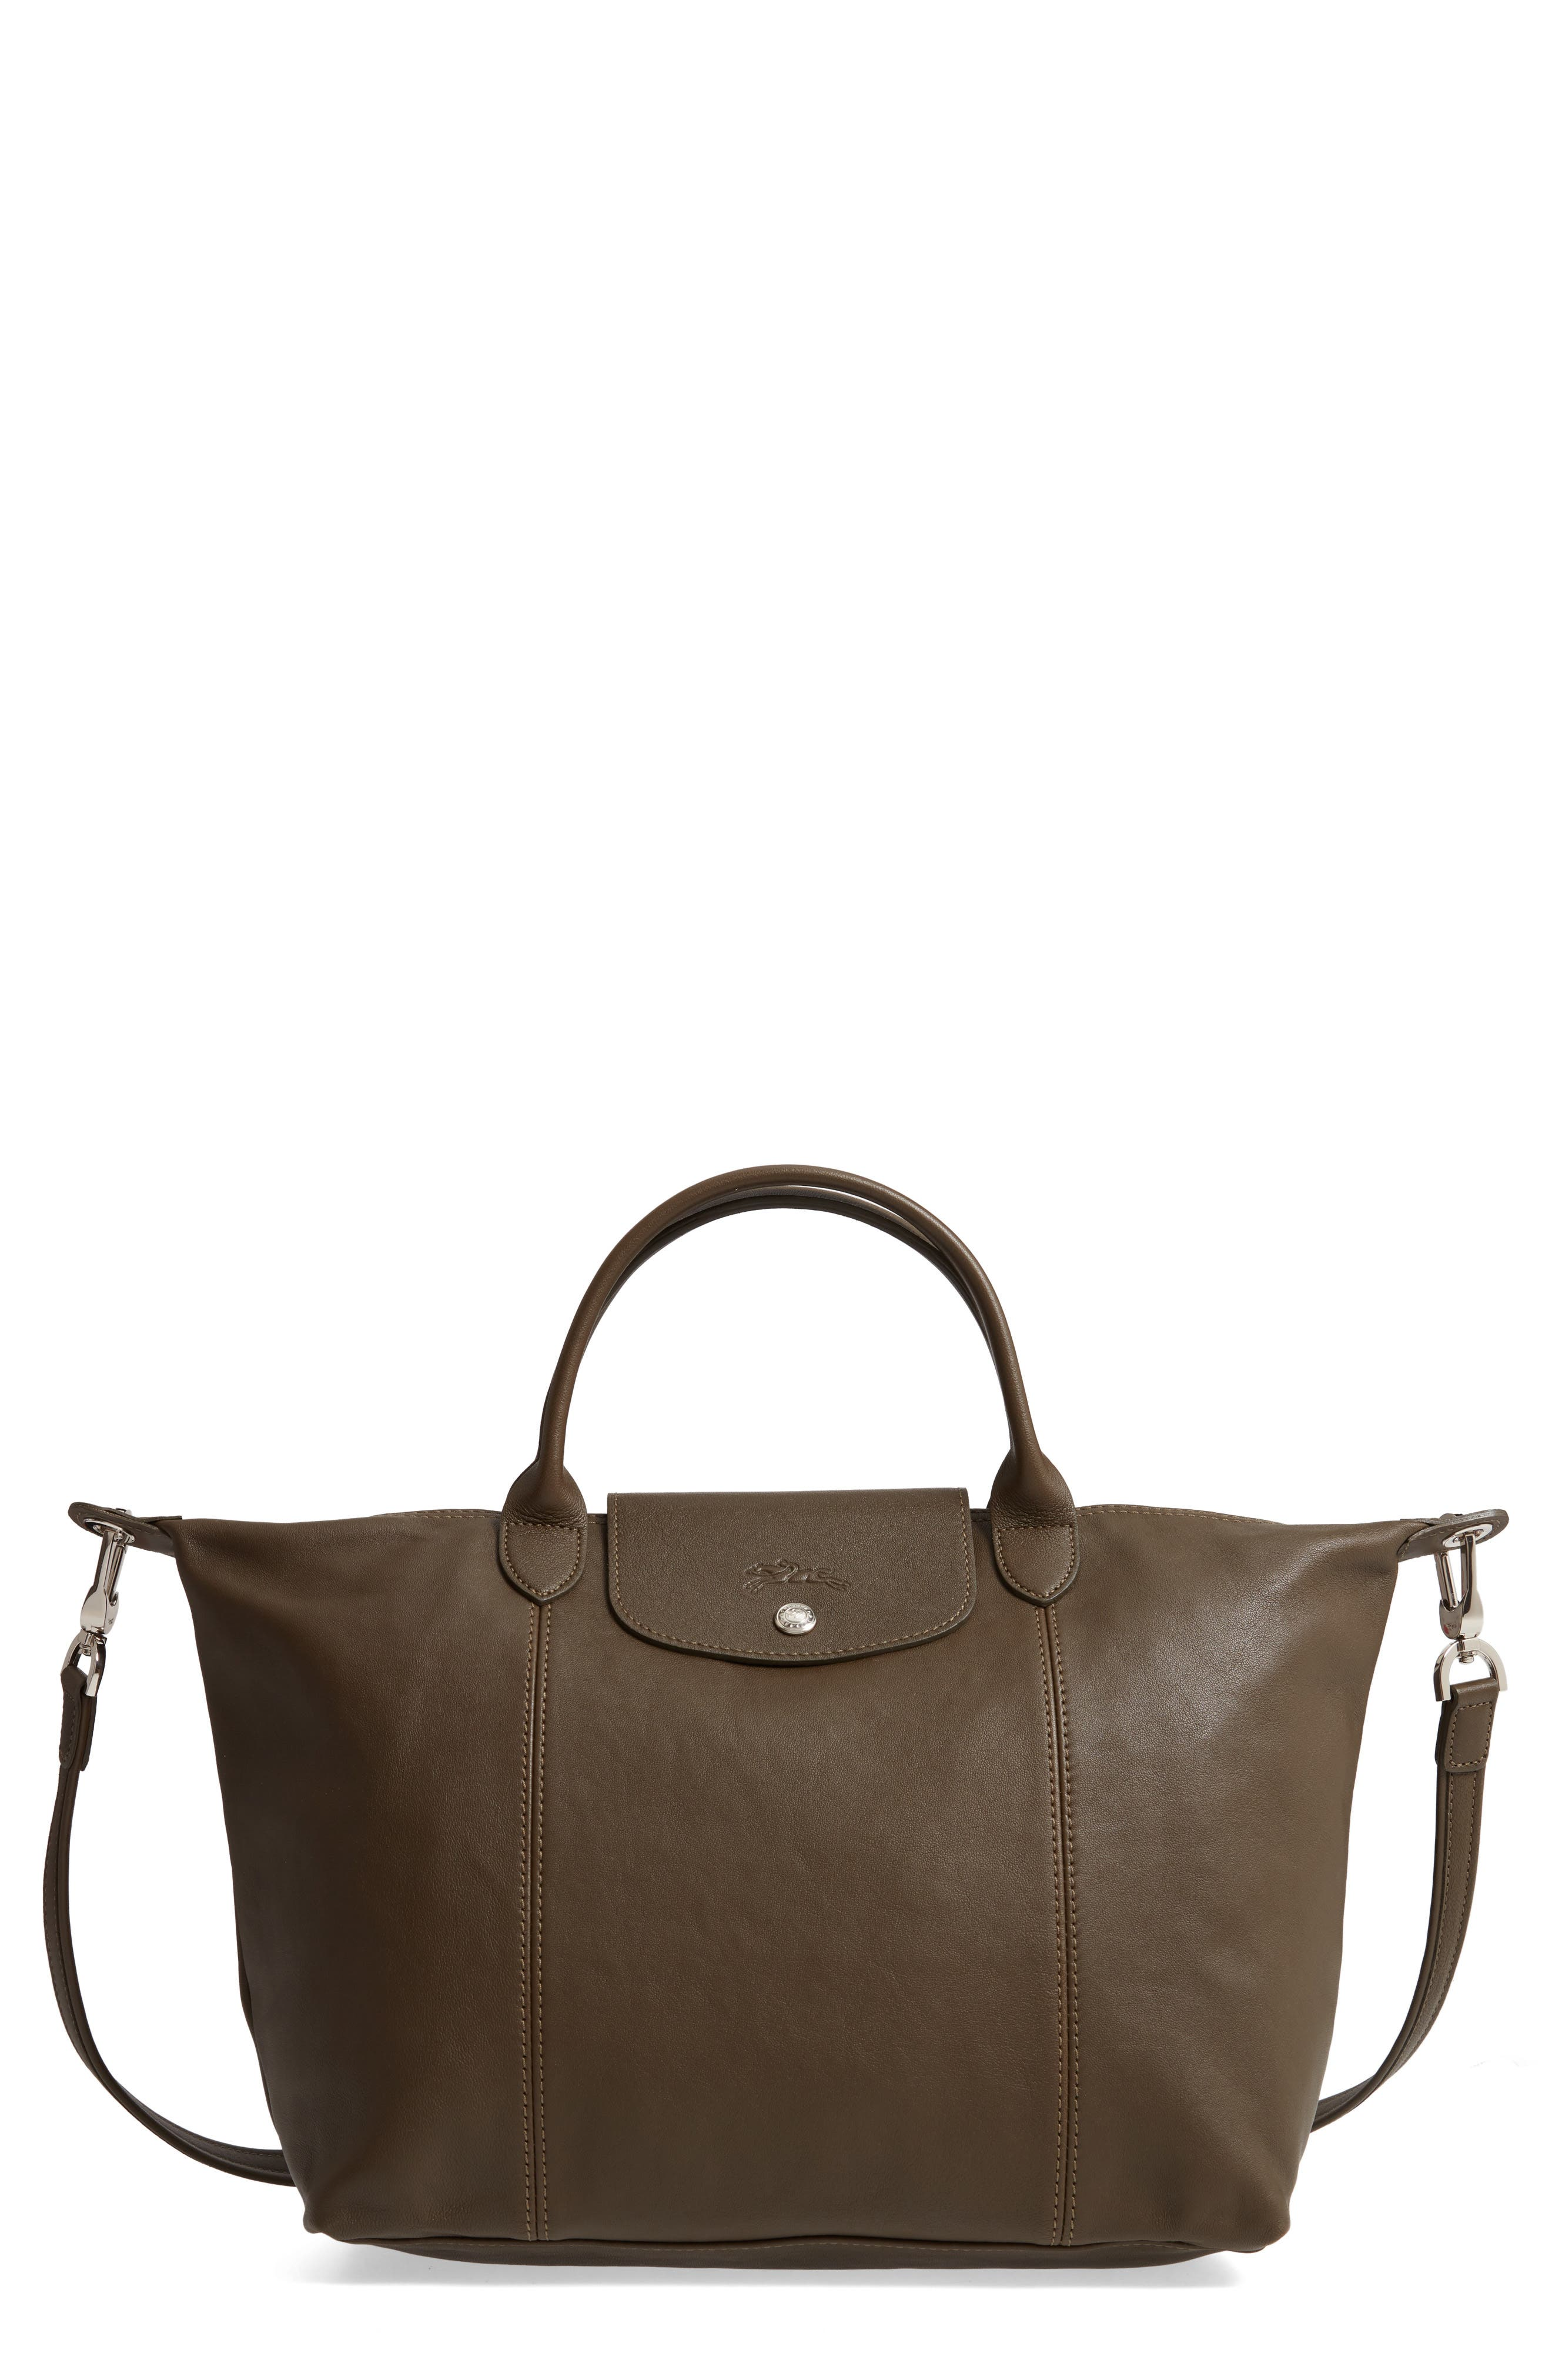 Medium 'Le Pliage Cuir' Leather Top Handle Tote,                             Main thumbnail 1, color,                             301